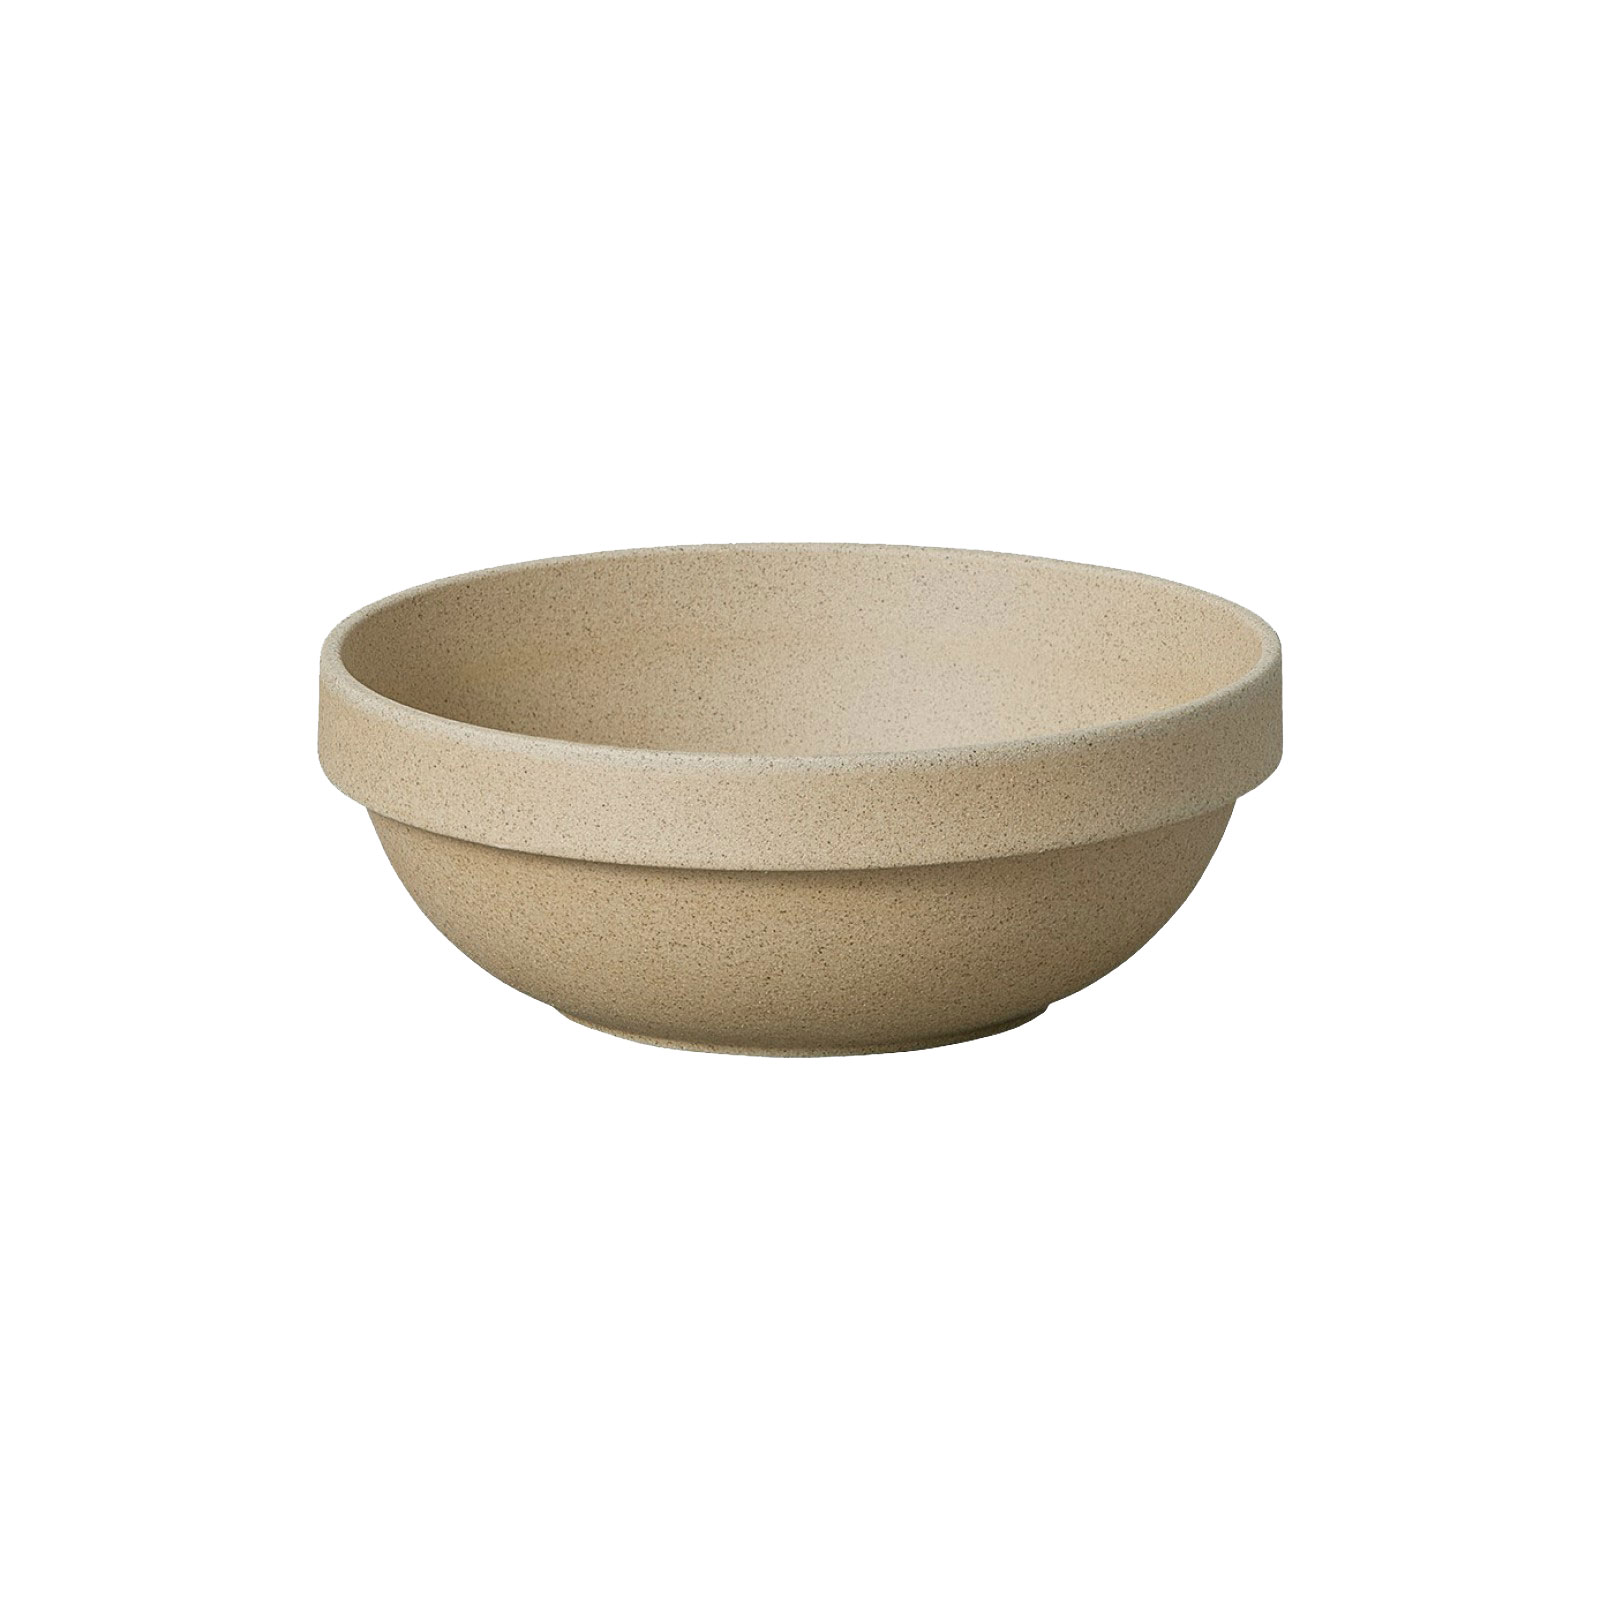 HP031 Hasami Round Bowl natural Ø 14,5 cm